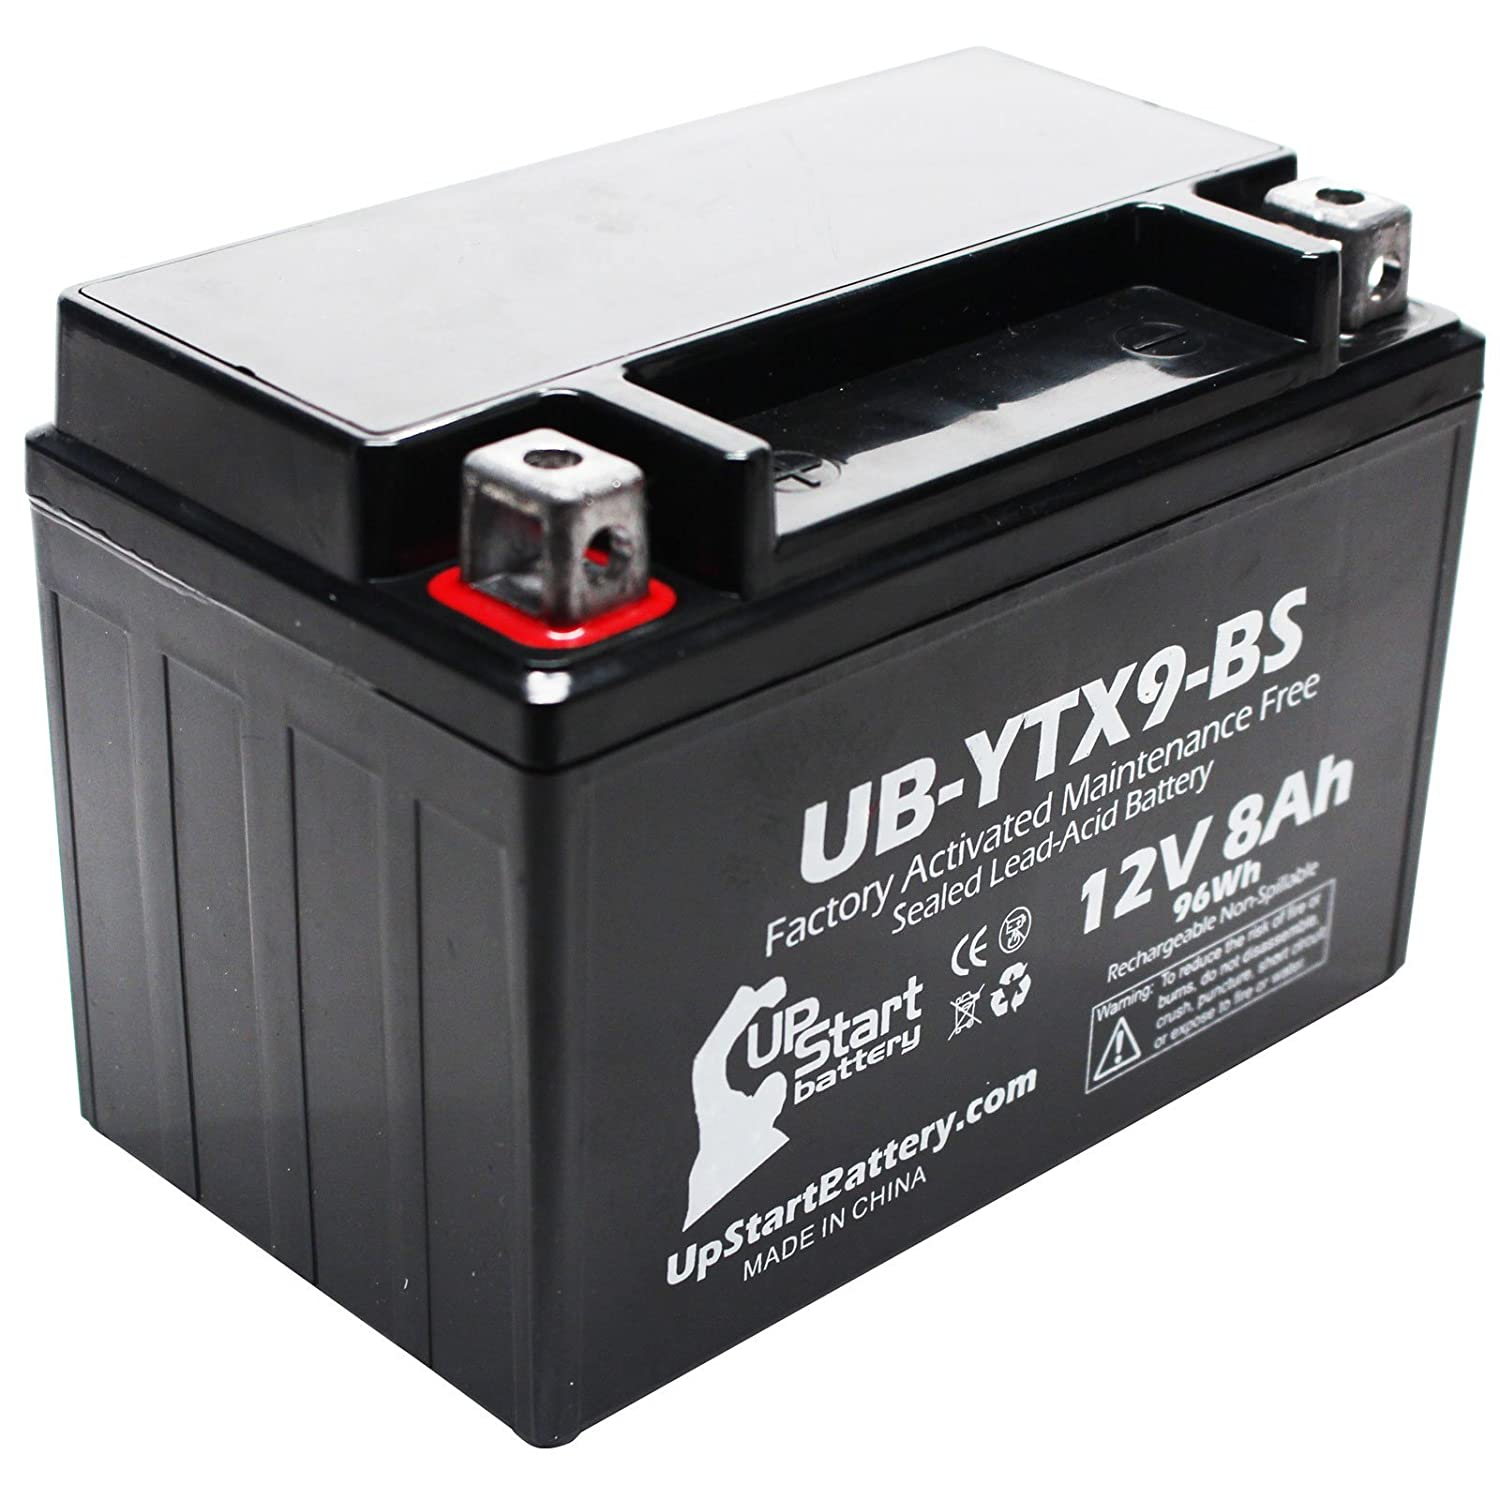 Maintenance Free 8Ah UB-YTX9-BS ATV Battery Replacement for 2006 Suzuki LT-Z400 Quadsport 400CC Factory Activated 12V